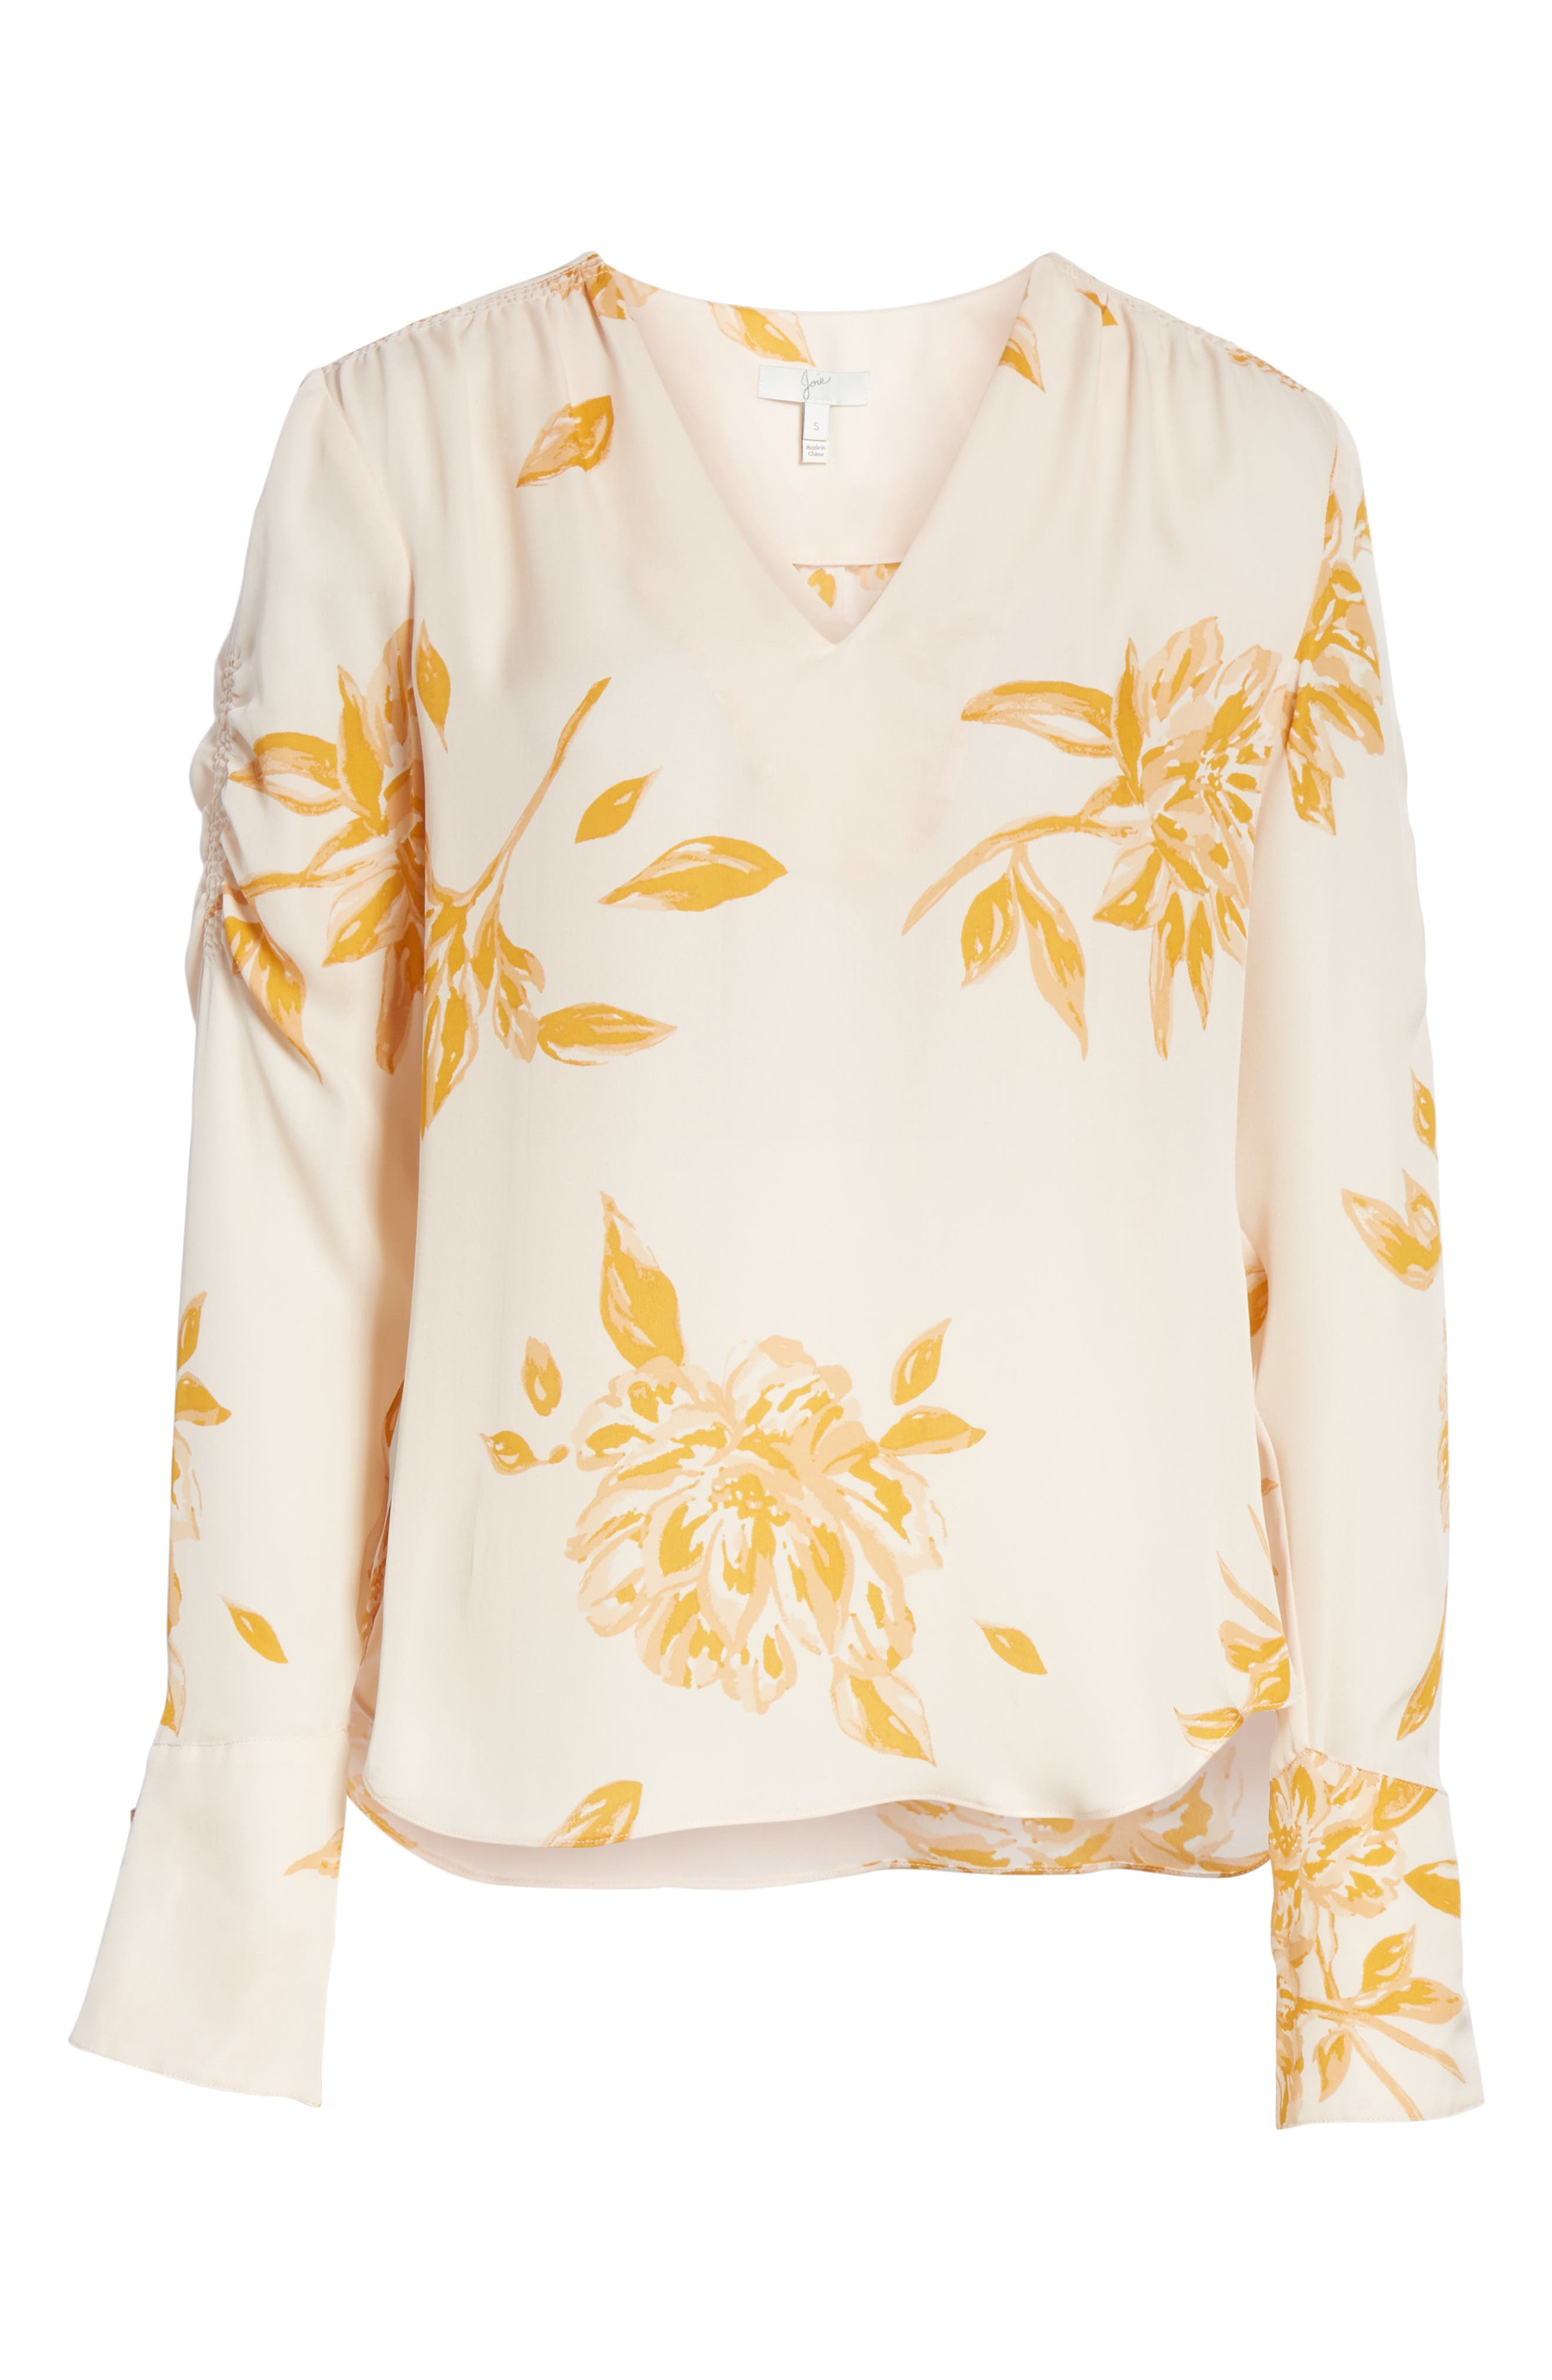 JOIE, Galvin Floral Silk Top, Alternate thumbnail 6, color, SHIMMER